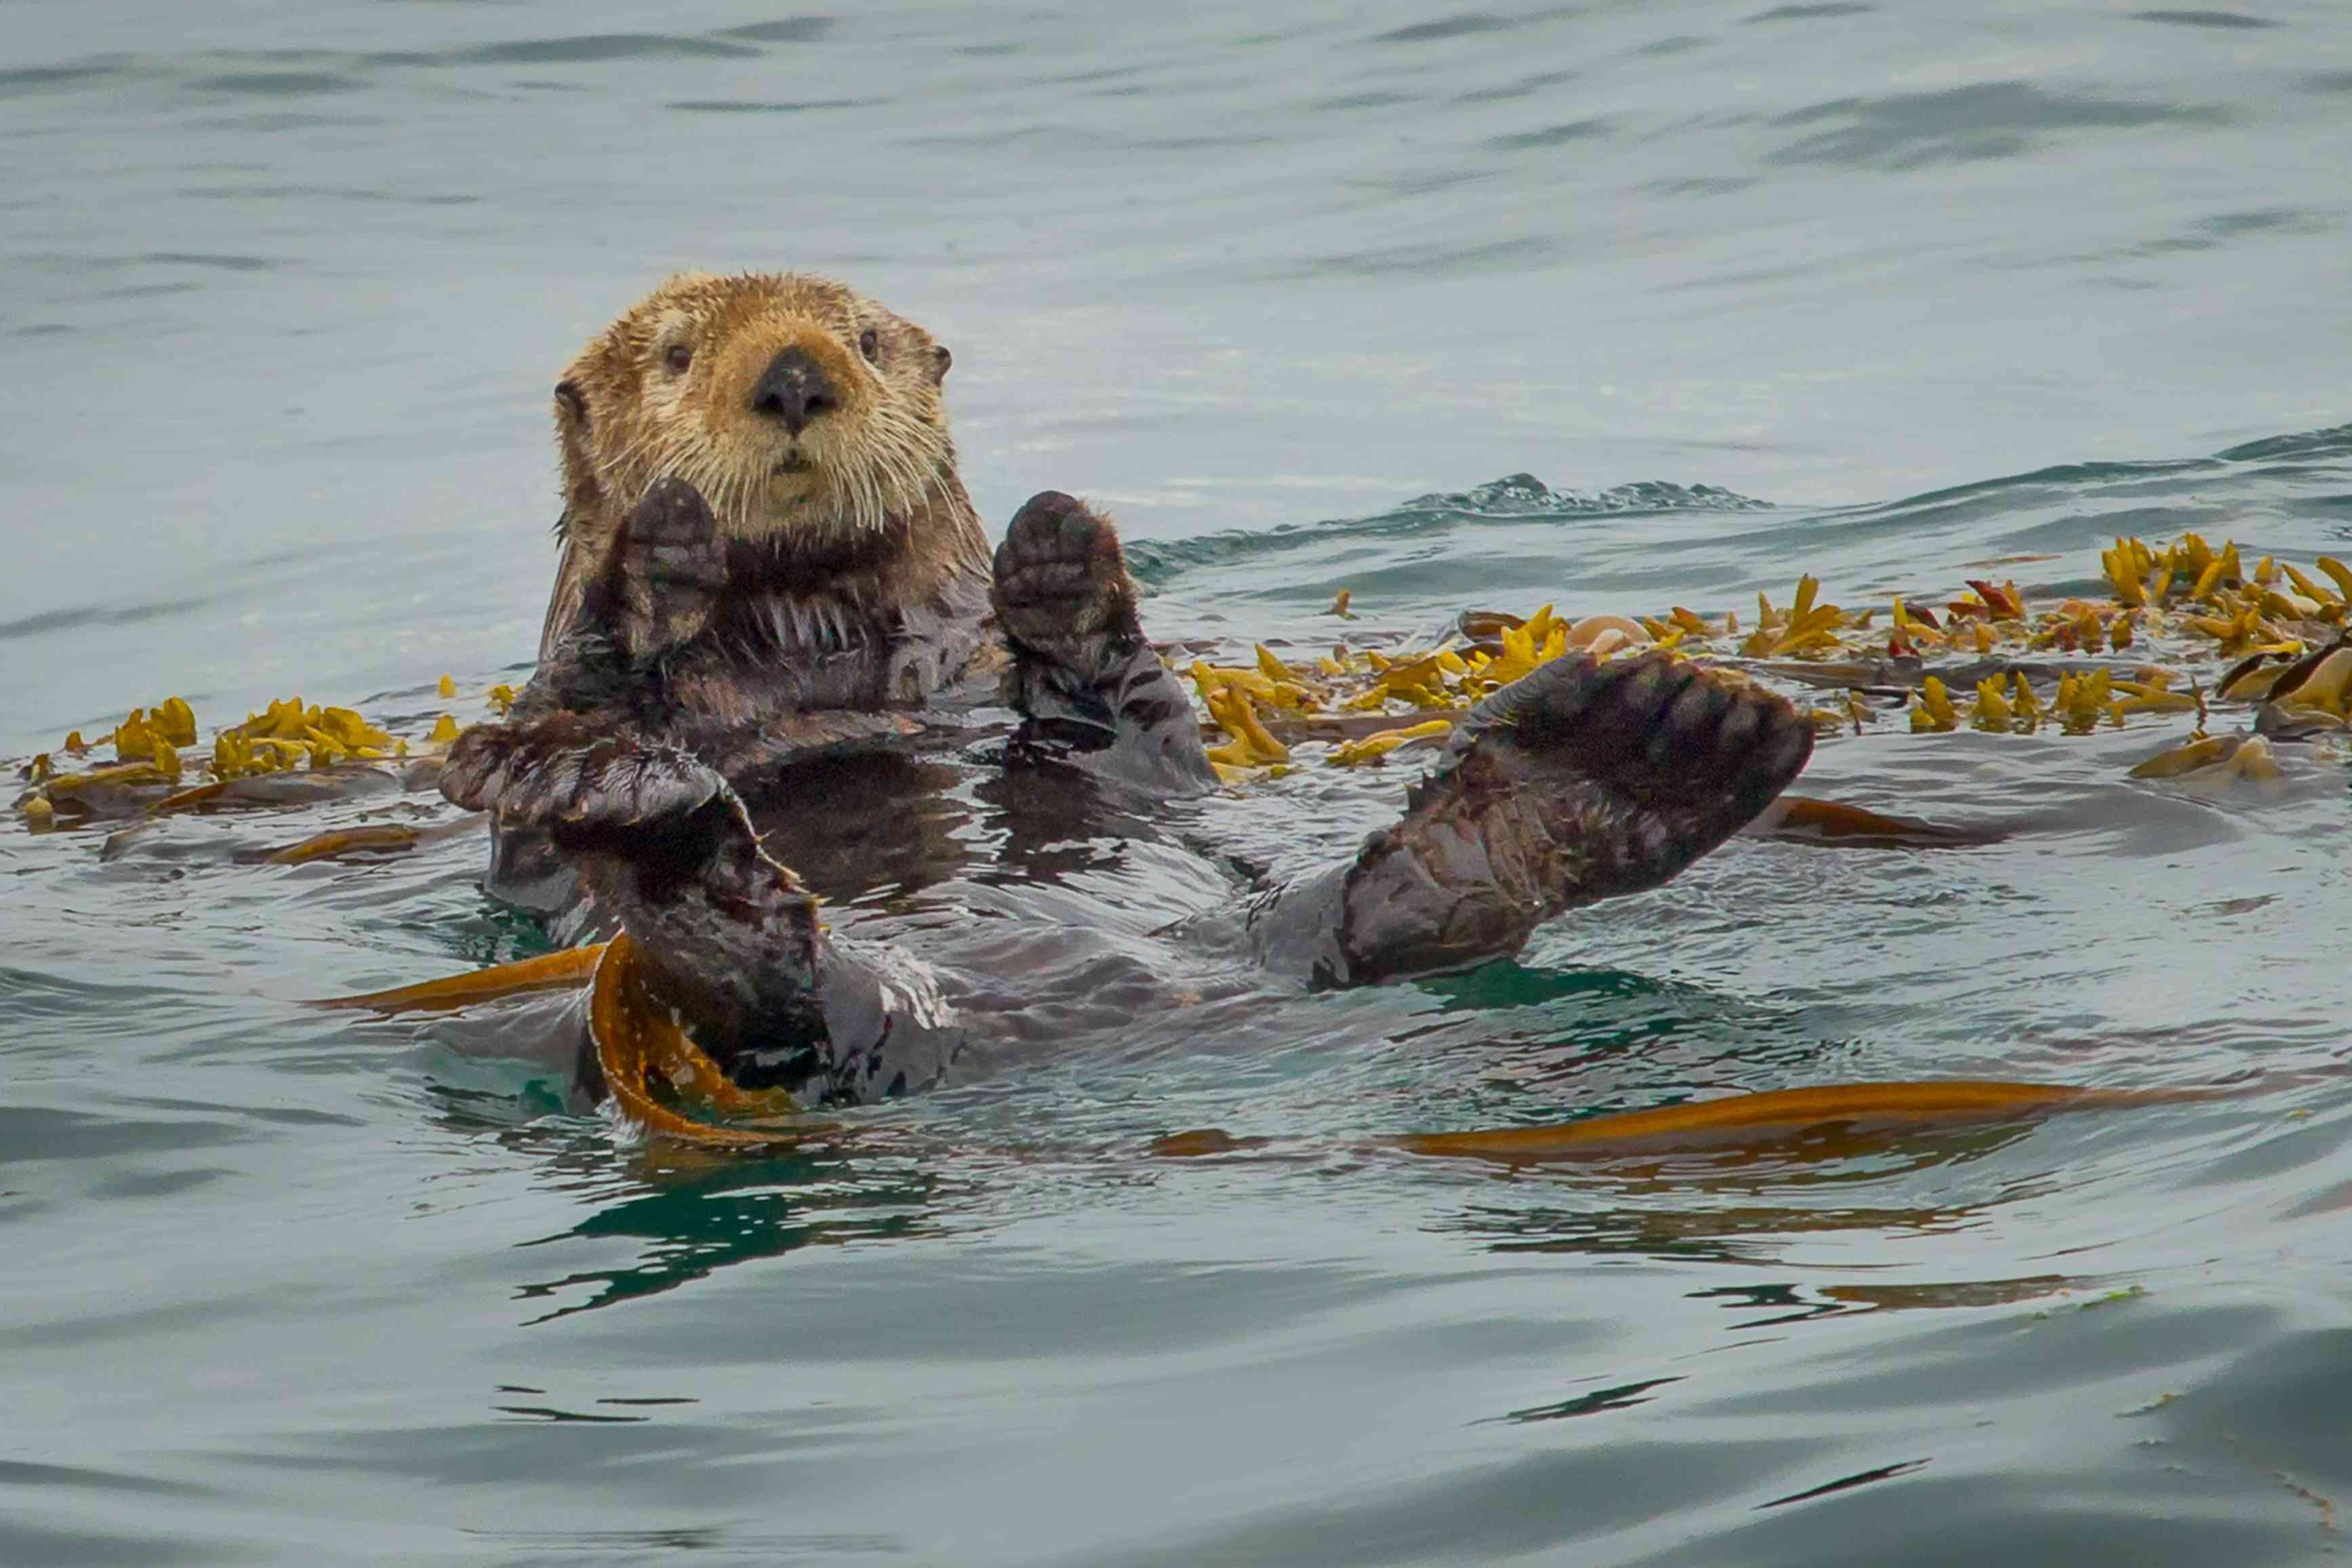 Sea otters are just one of the many mammal species who live in Glacier Bay